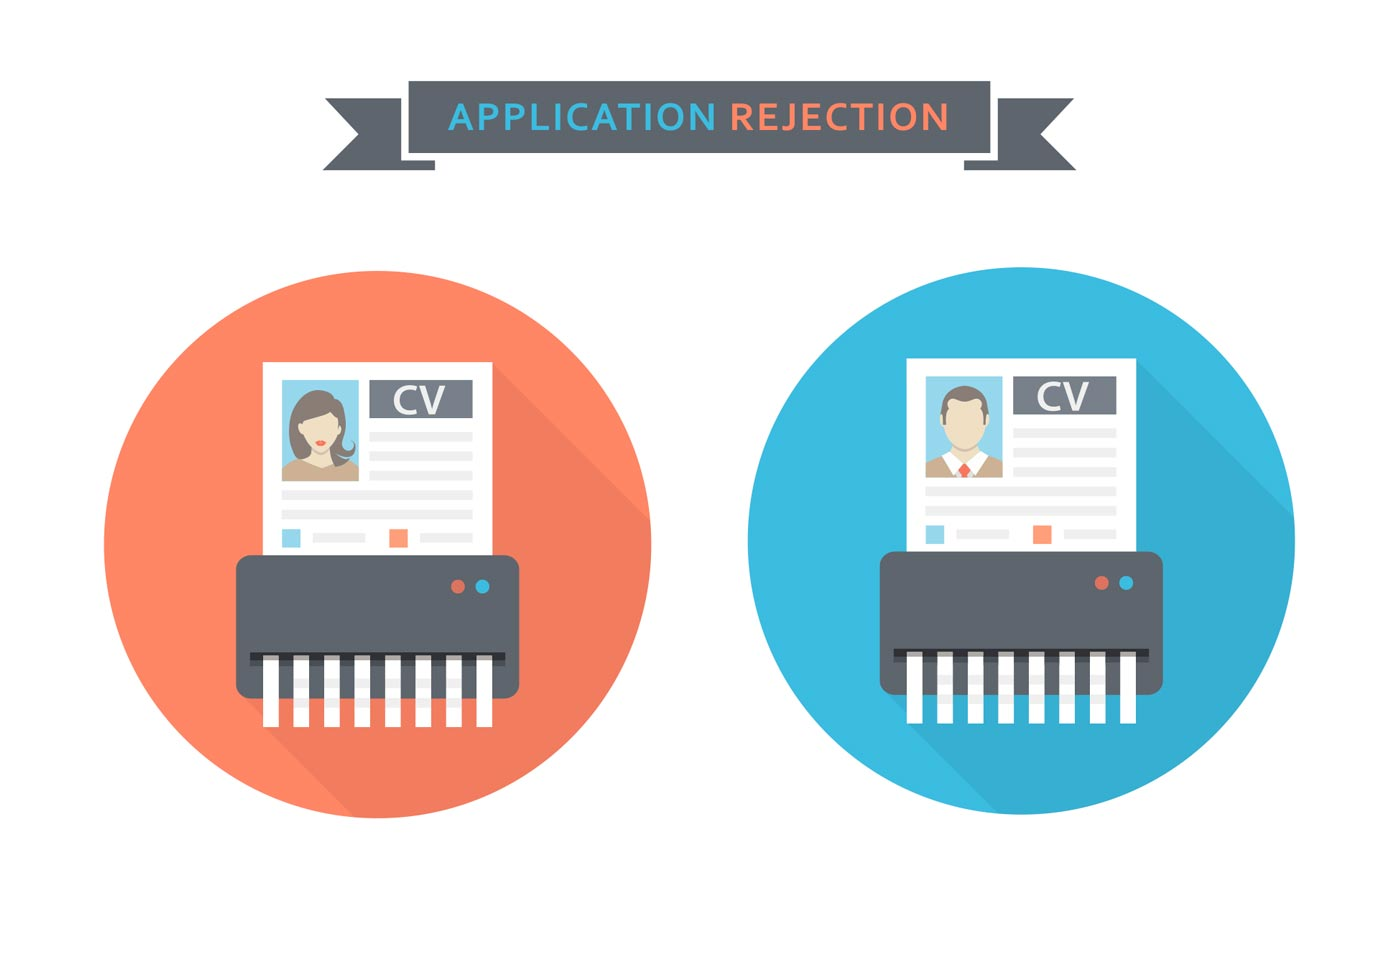 free curriculum vitae rejected vector icons